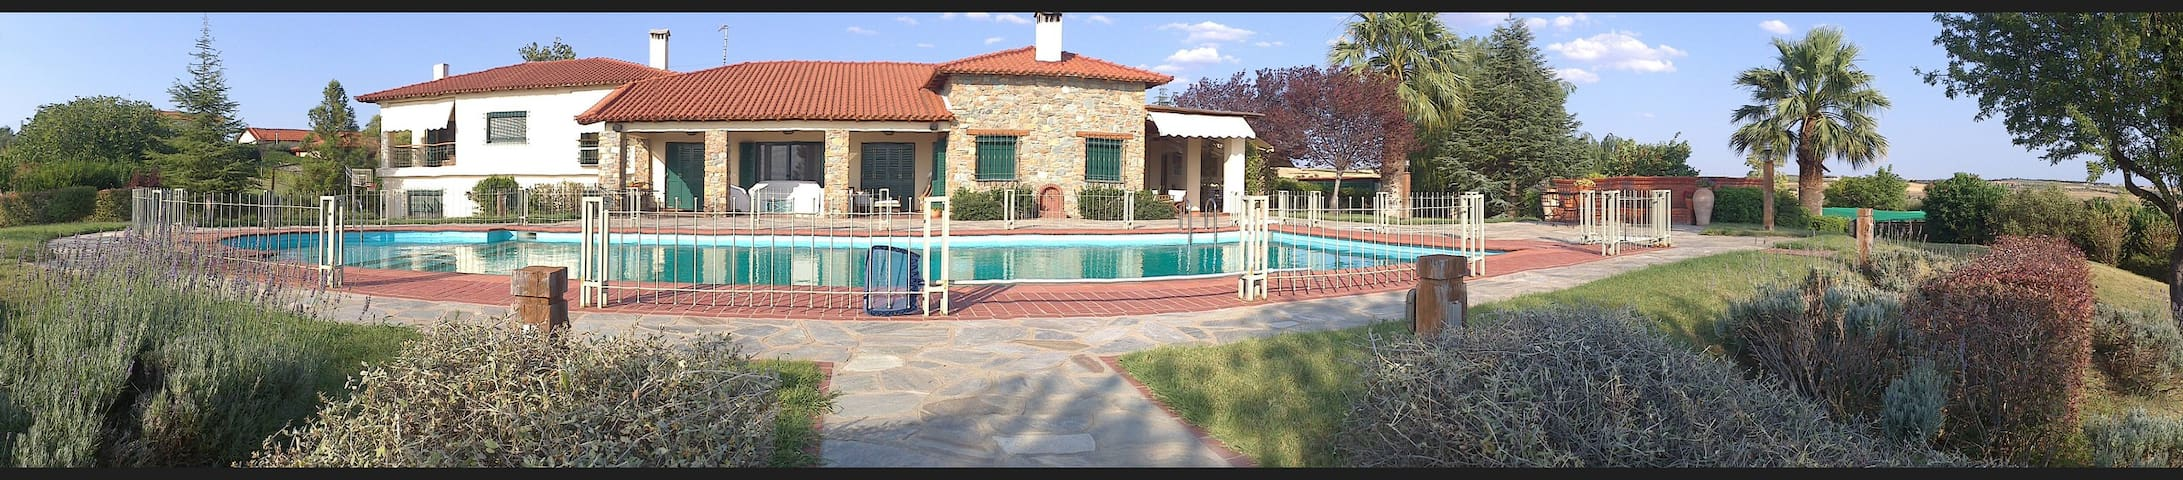 Estate & stone villa opposite mount Olympus - Kardia